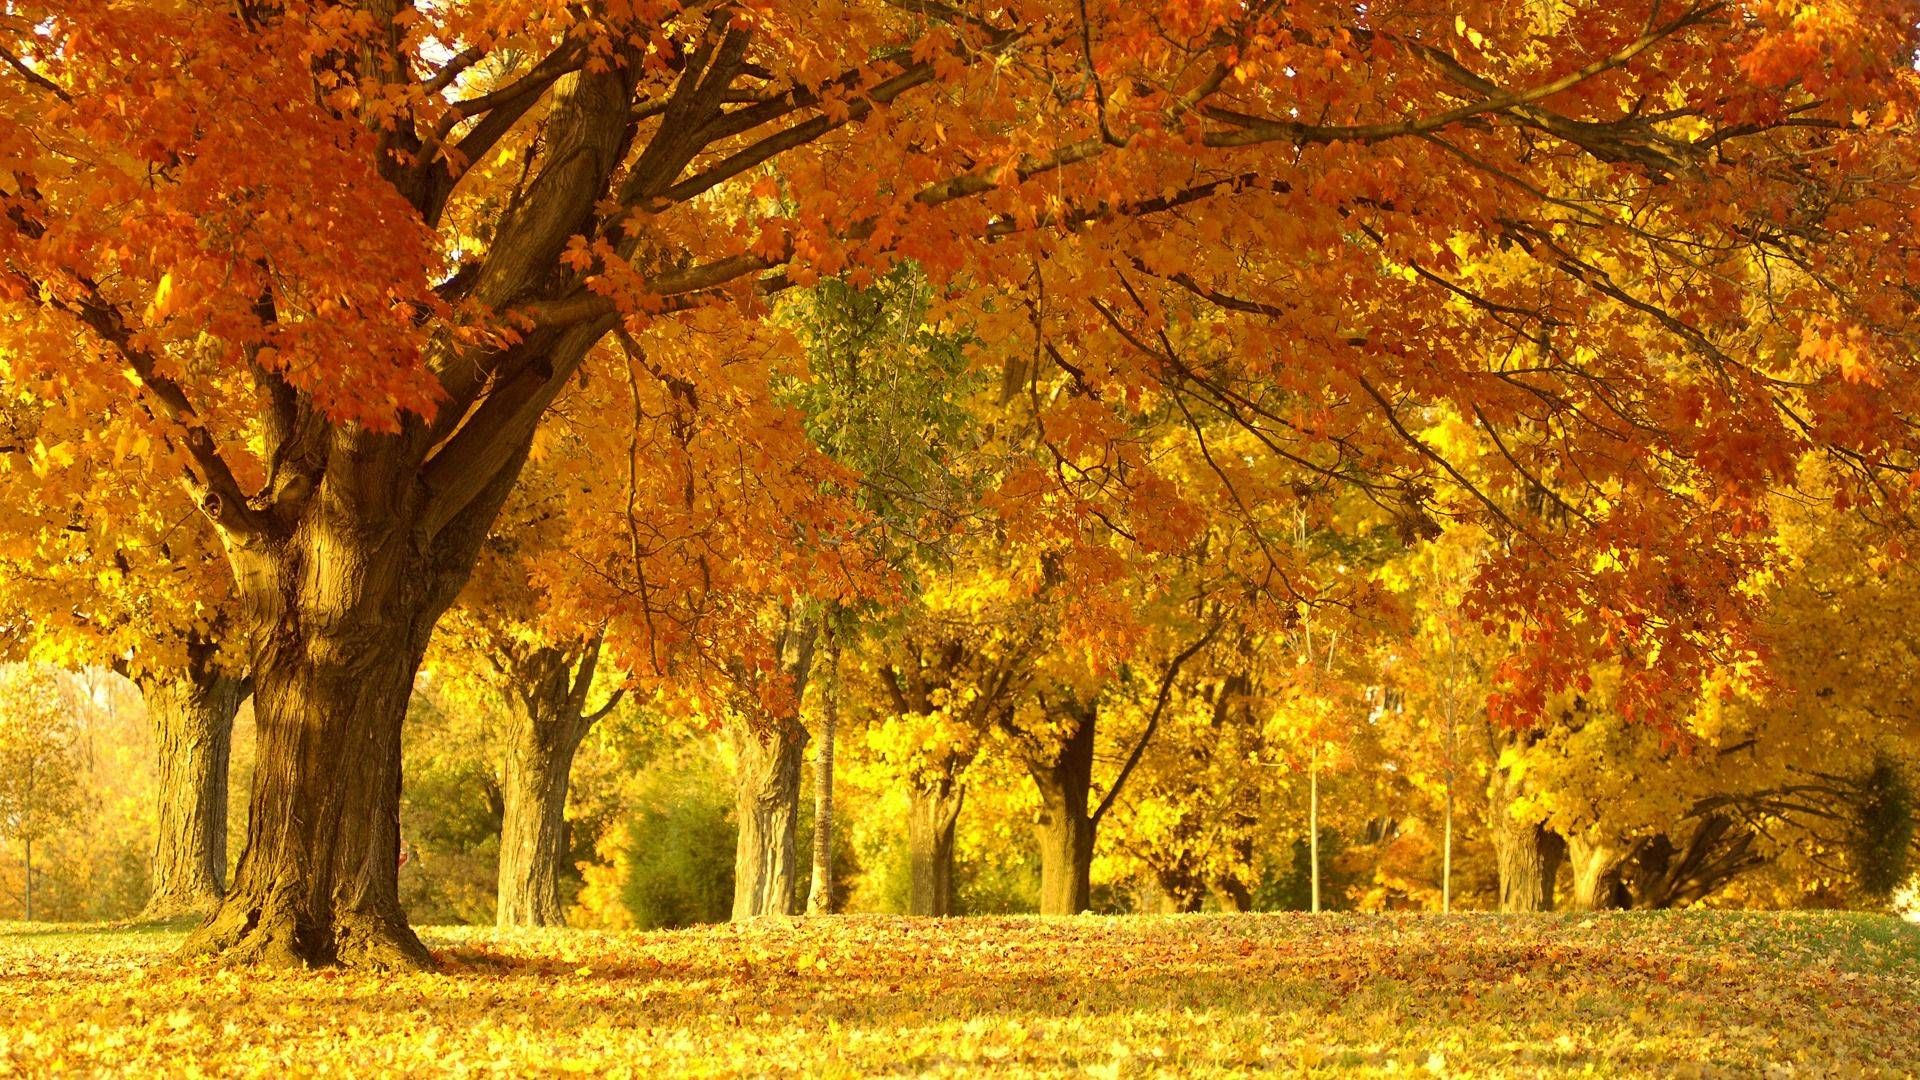 New England Autumn Scenery Beautiful Nature Wallpaper Autumn Scenes